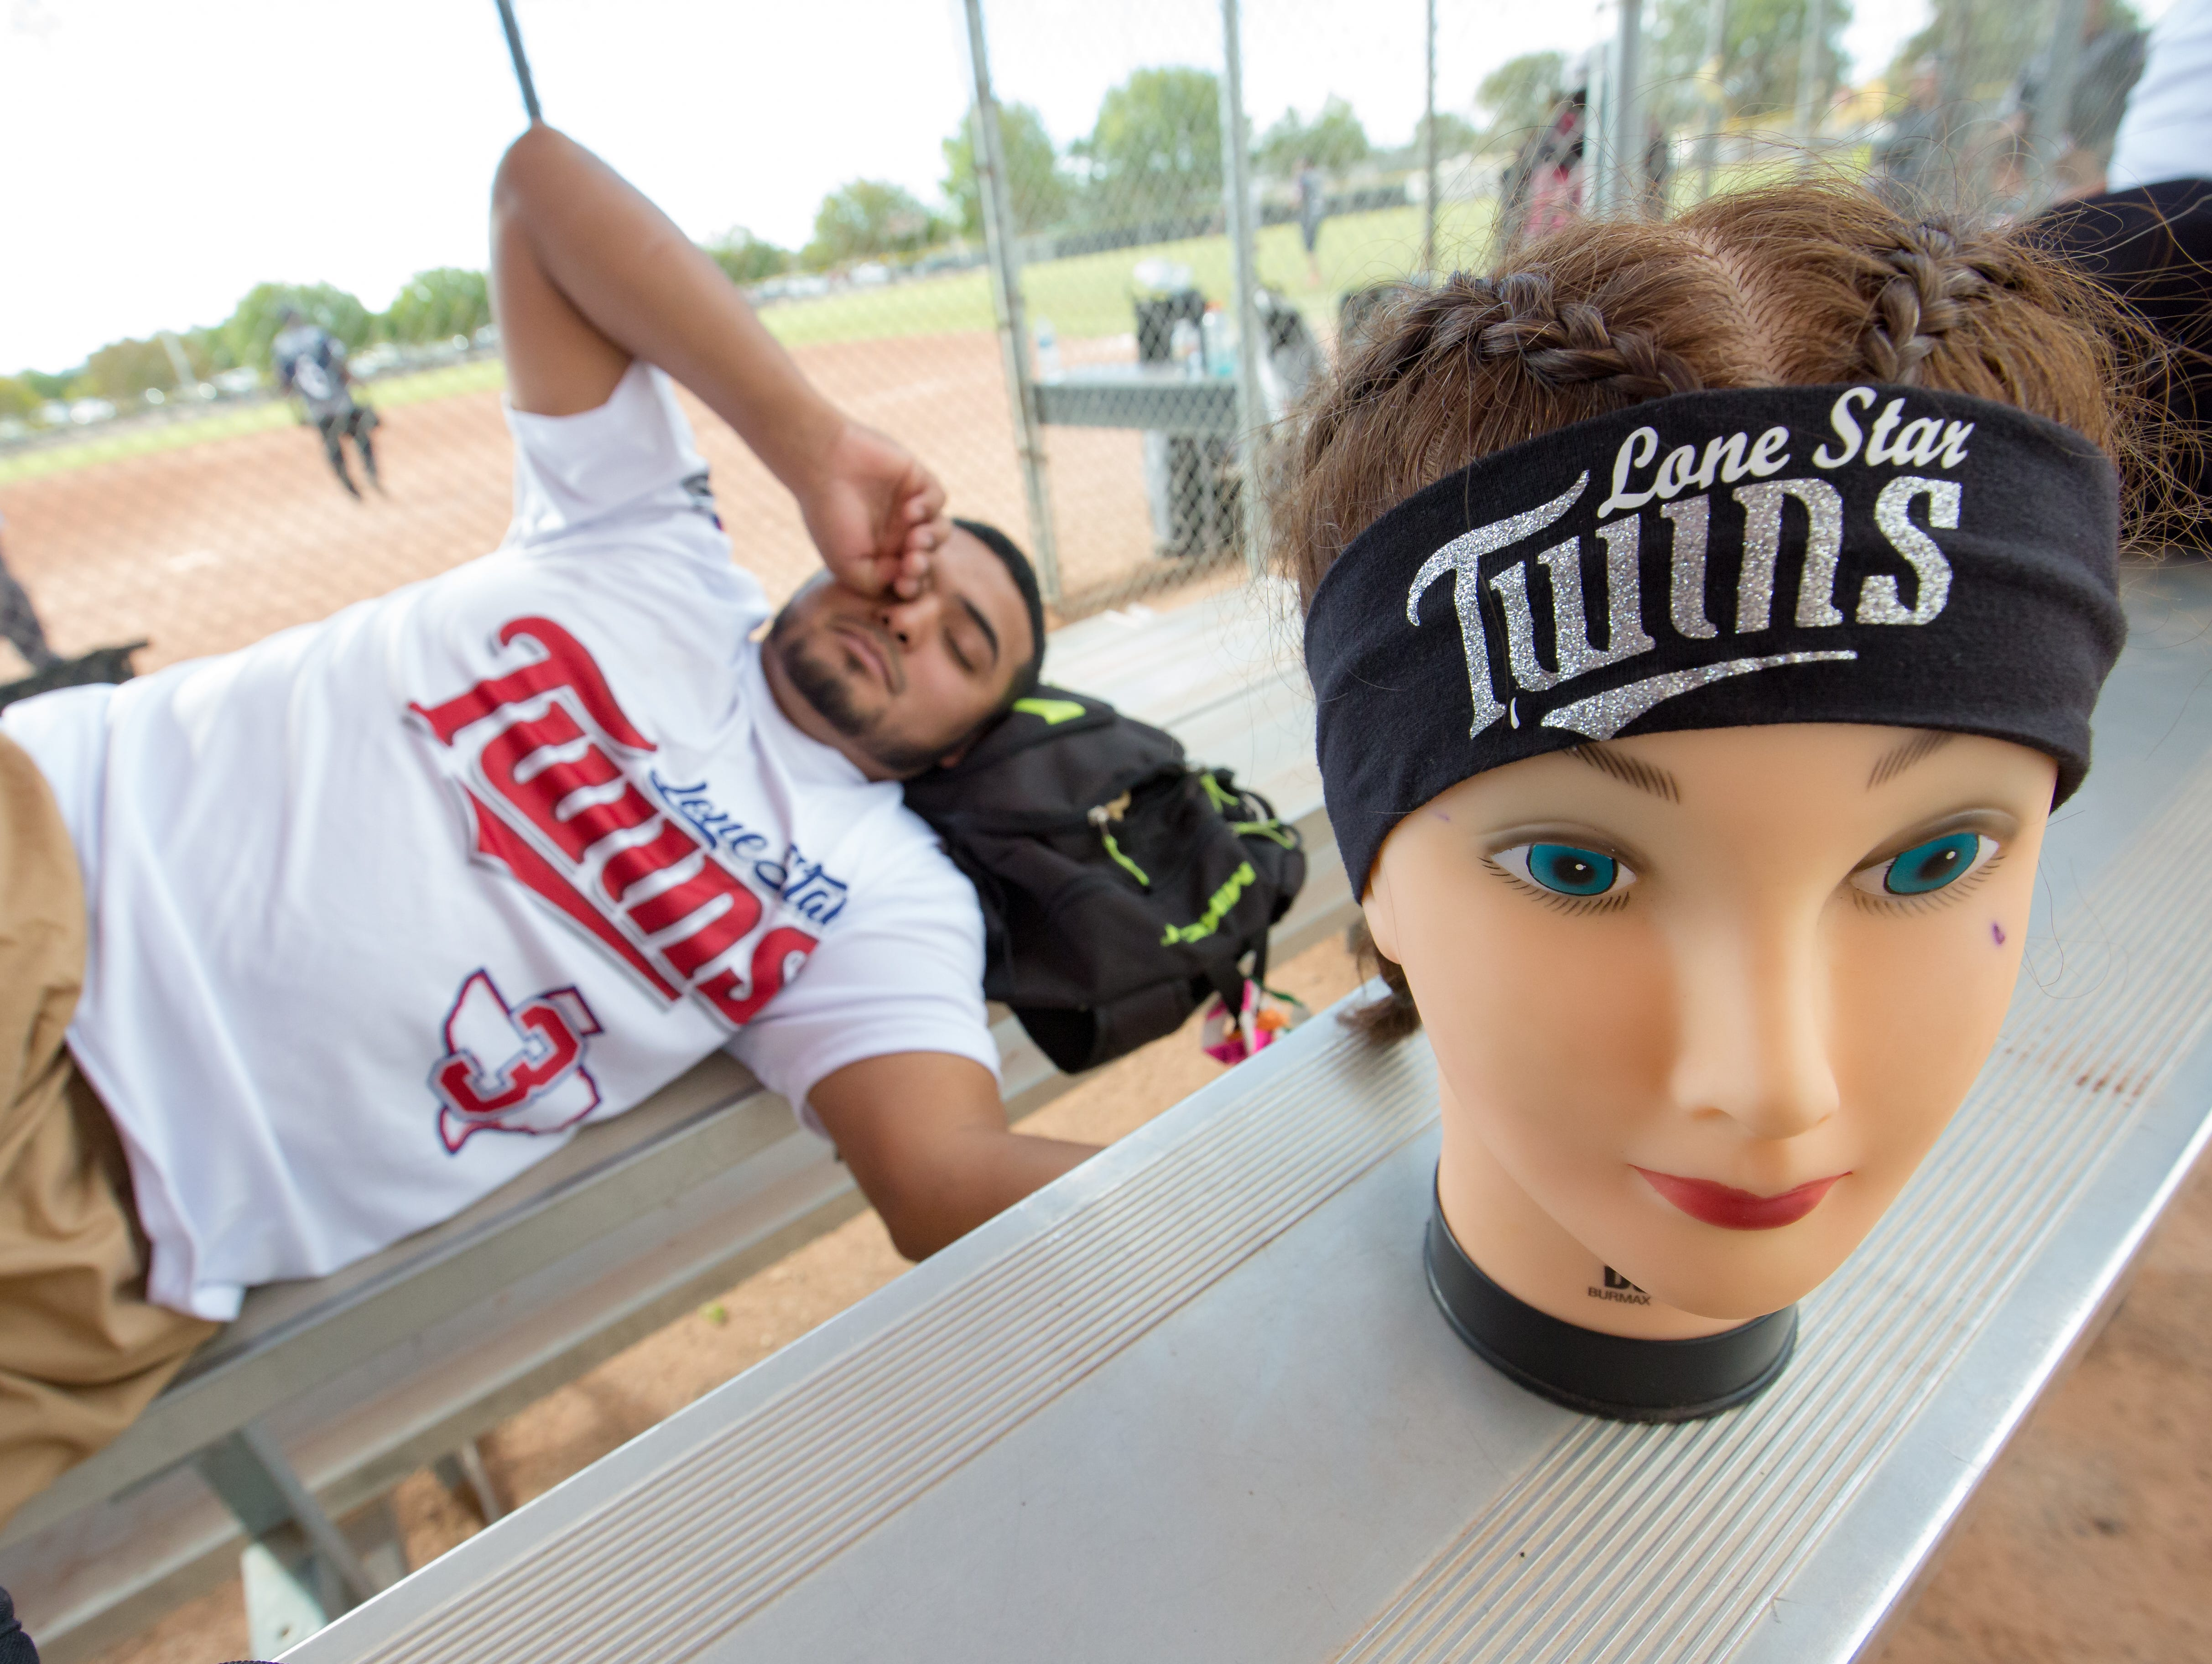 Lone Star Twins team member, Hector Gallegos, of Corpus Christi, Texas stretches while he naps before tournament play on Sunday, Oct. 7, 2018 during the 39th Whole Enchilada Invitational softball tournament at the Hadley complex. Pictured next to Gallegos is the team mascot, Deb.